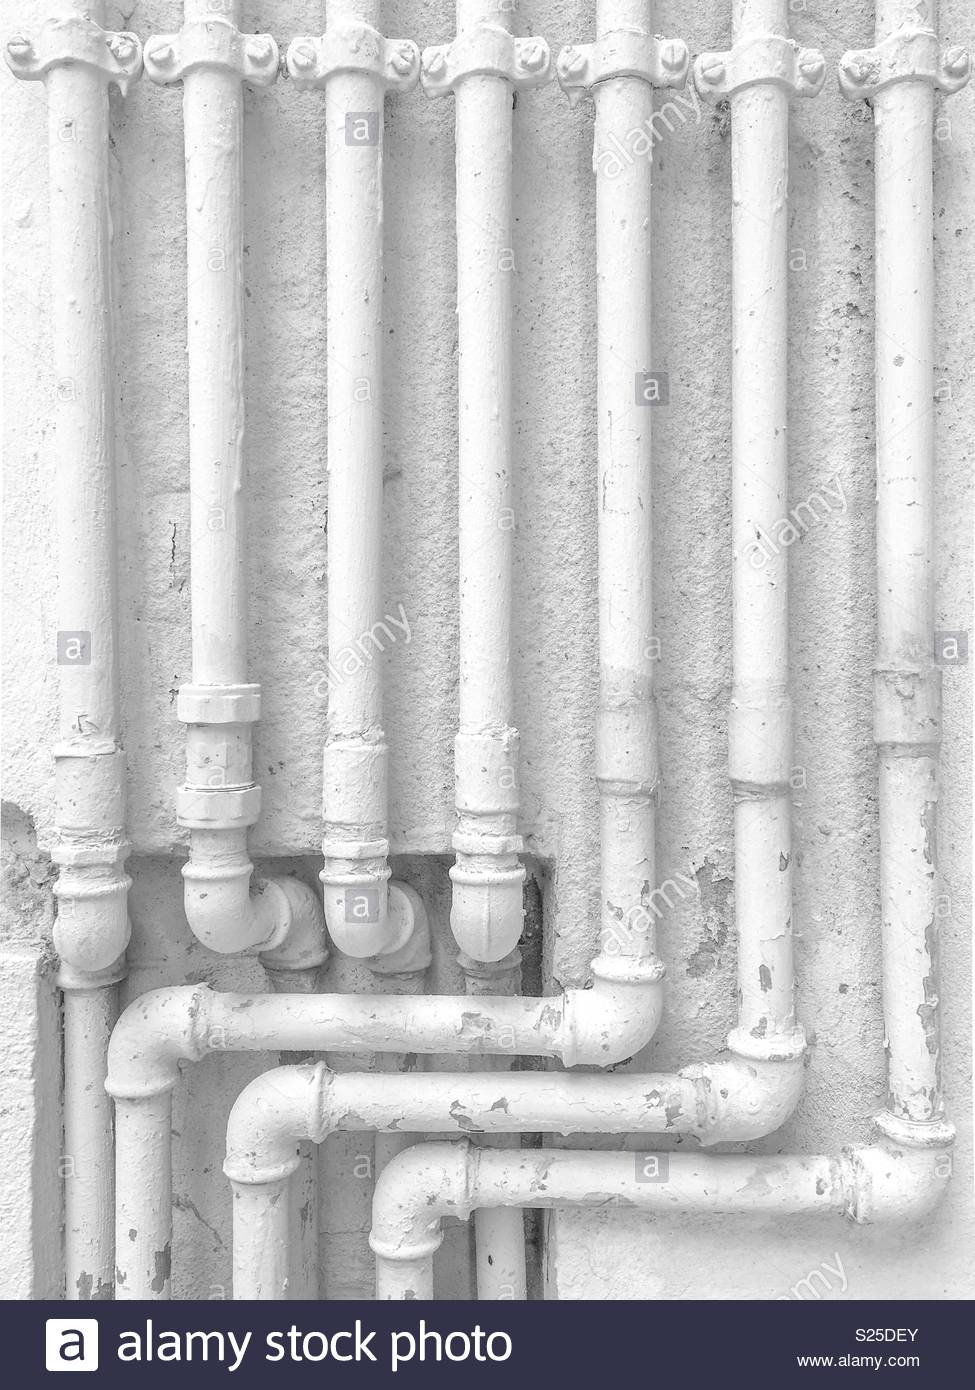 Black and white shot of some old pipes - Stock Image